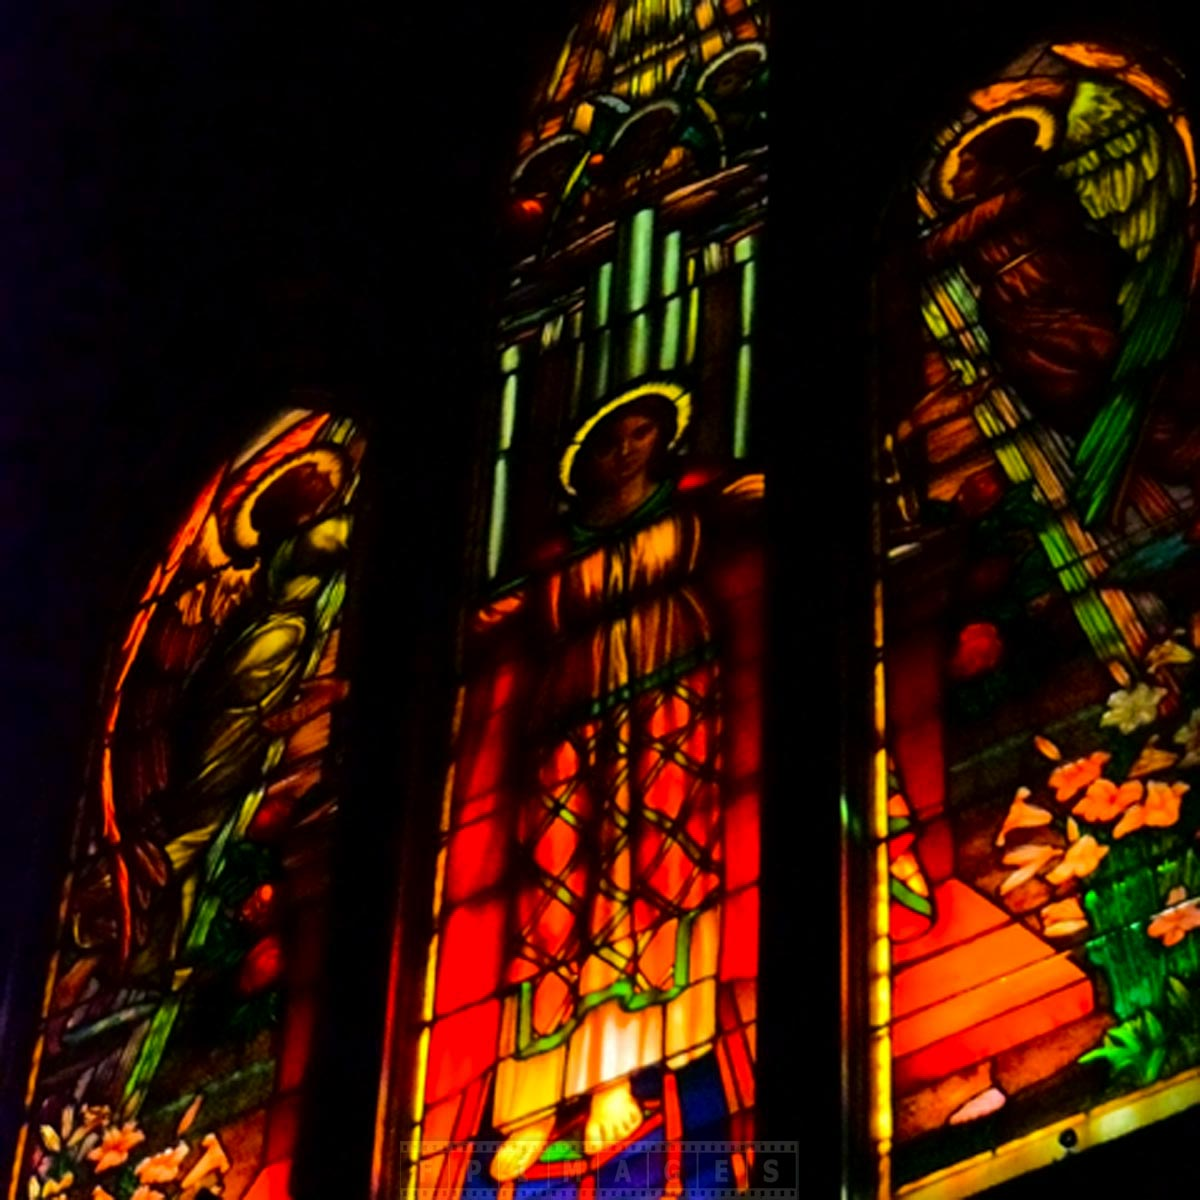 Saint Adrews beautiful old church stained glass